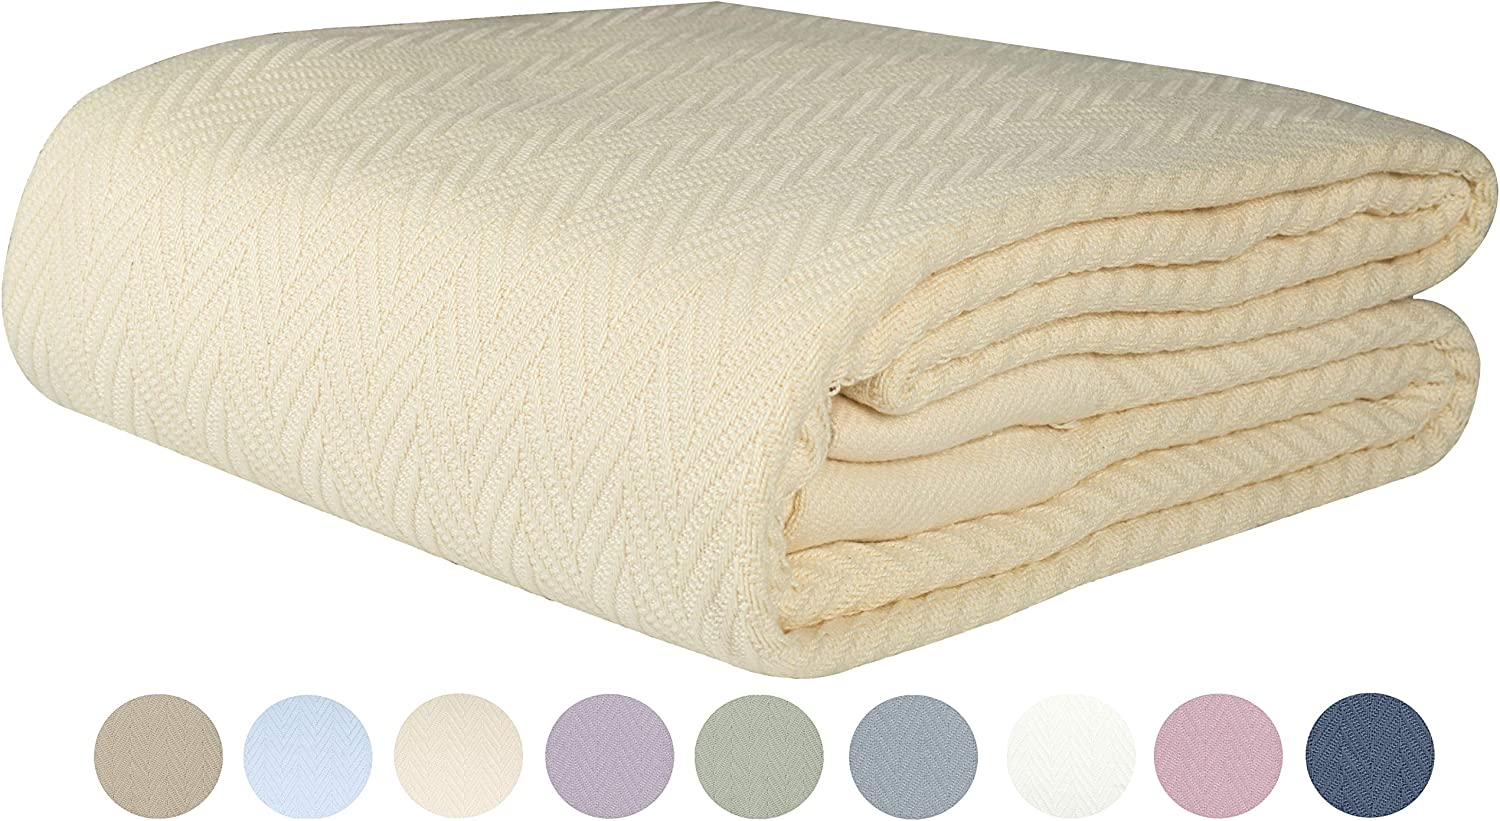 Threadmill Home Linen 100% Cotton Blanket Herringbone Soft Breathable Full/Queen Size Natural